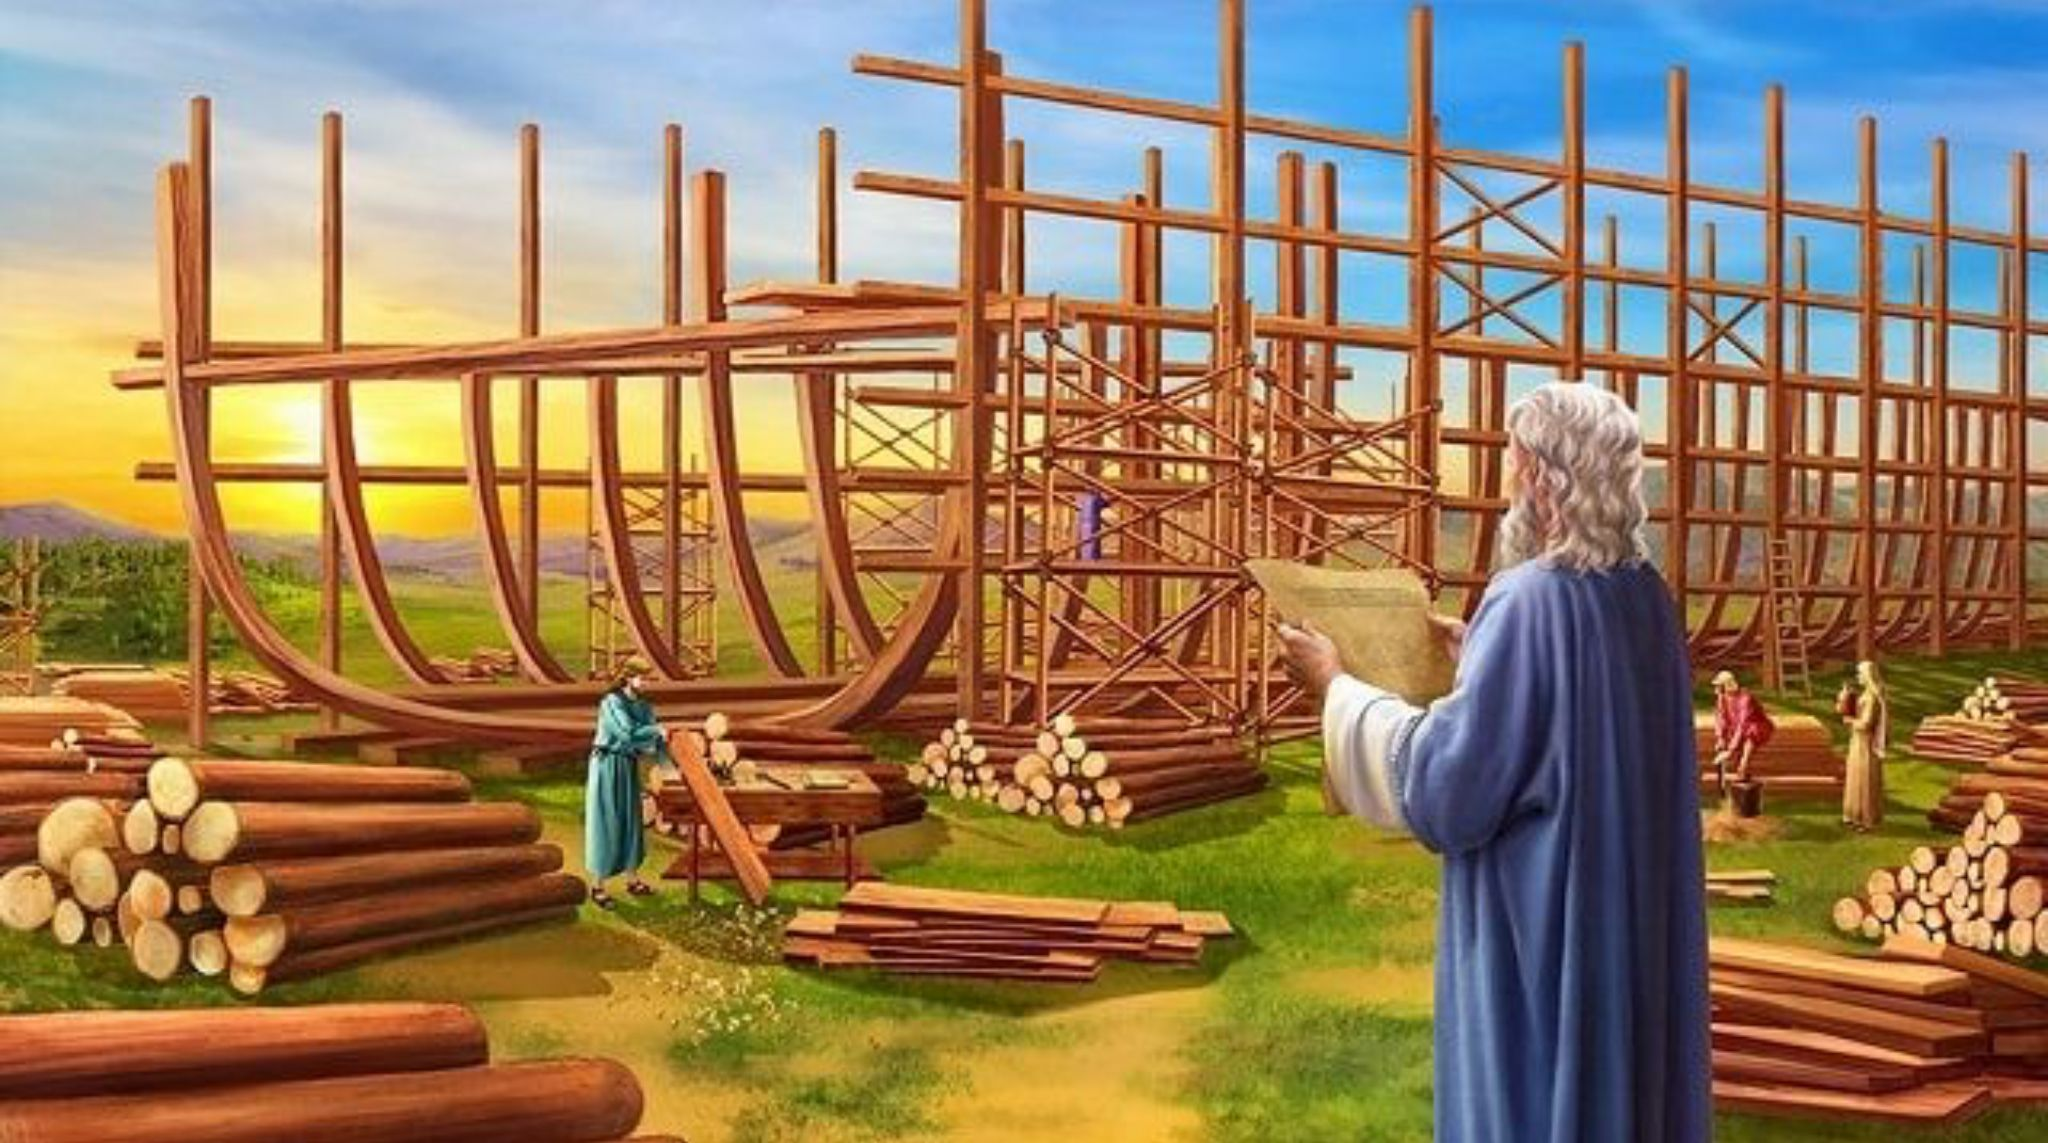 Good Morning My Dear Jw Family And Friends Wake Up To This Morning S Daily Text Taken From 2 Pet 2 5 Live Noah Building The Ark Bible Pictures Water Flood